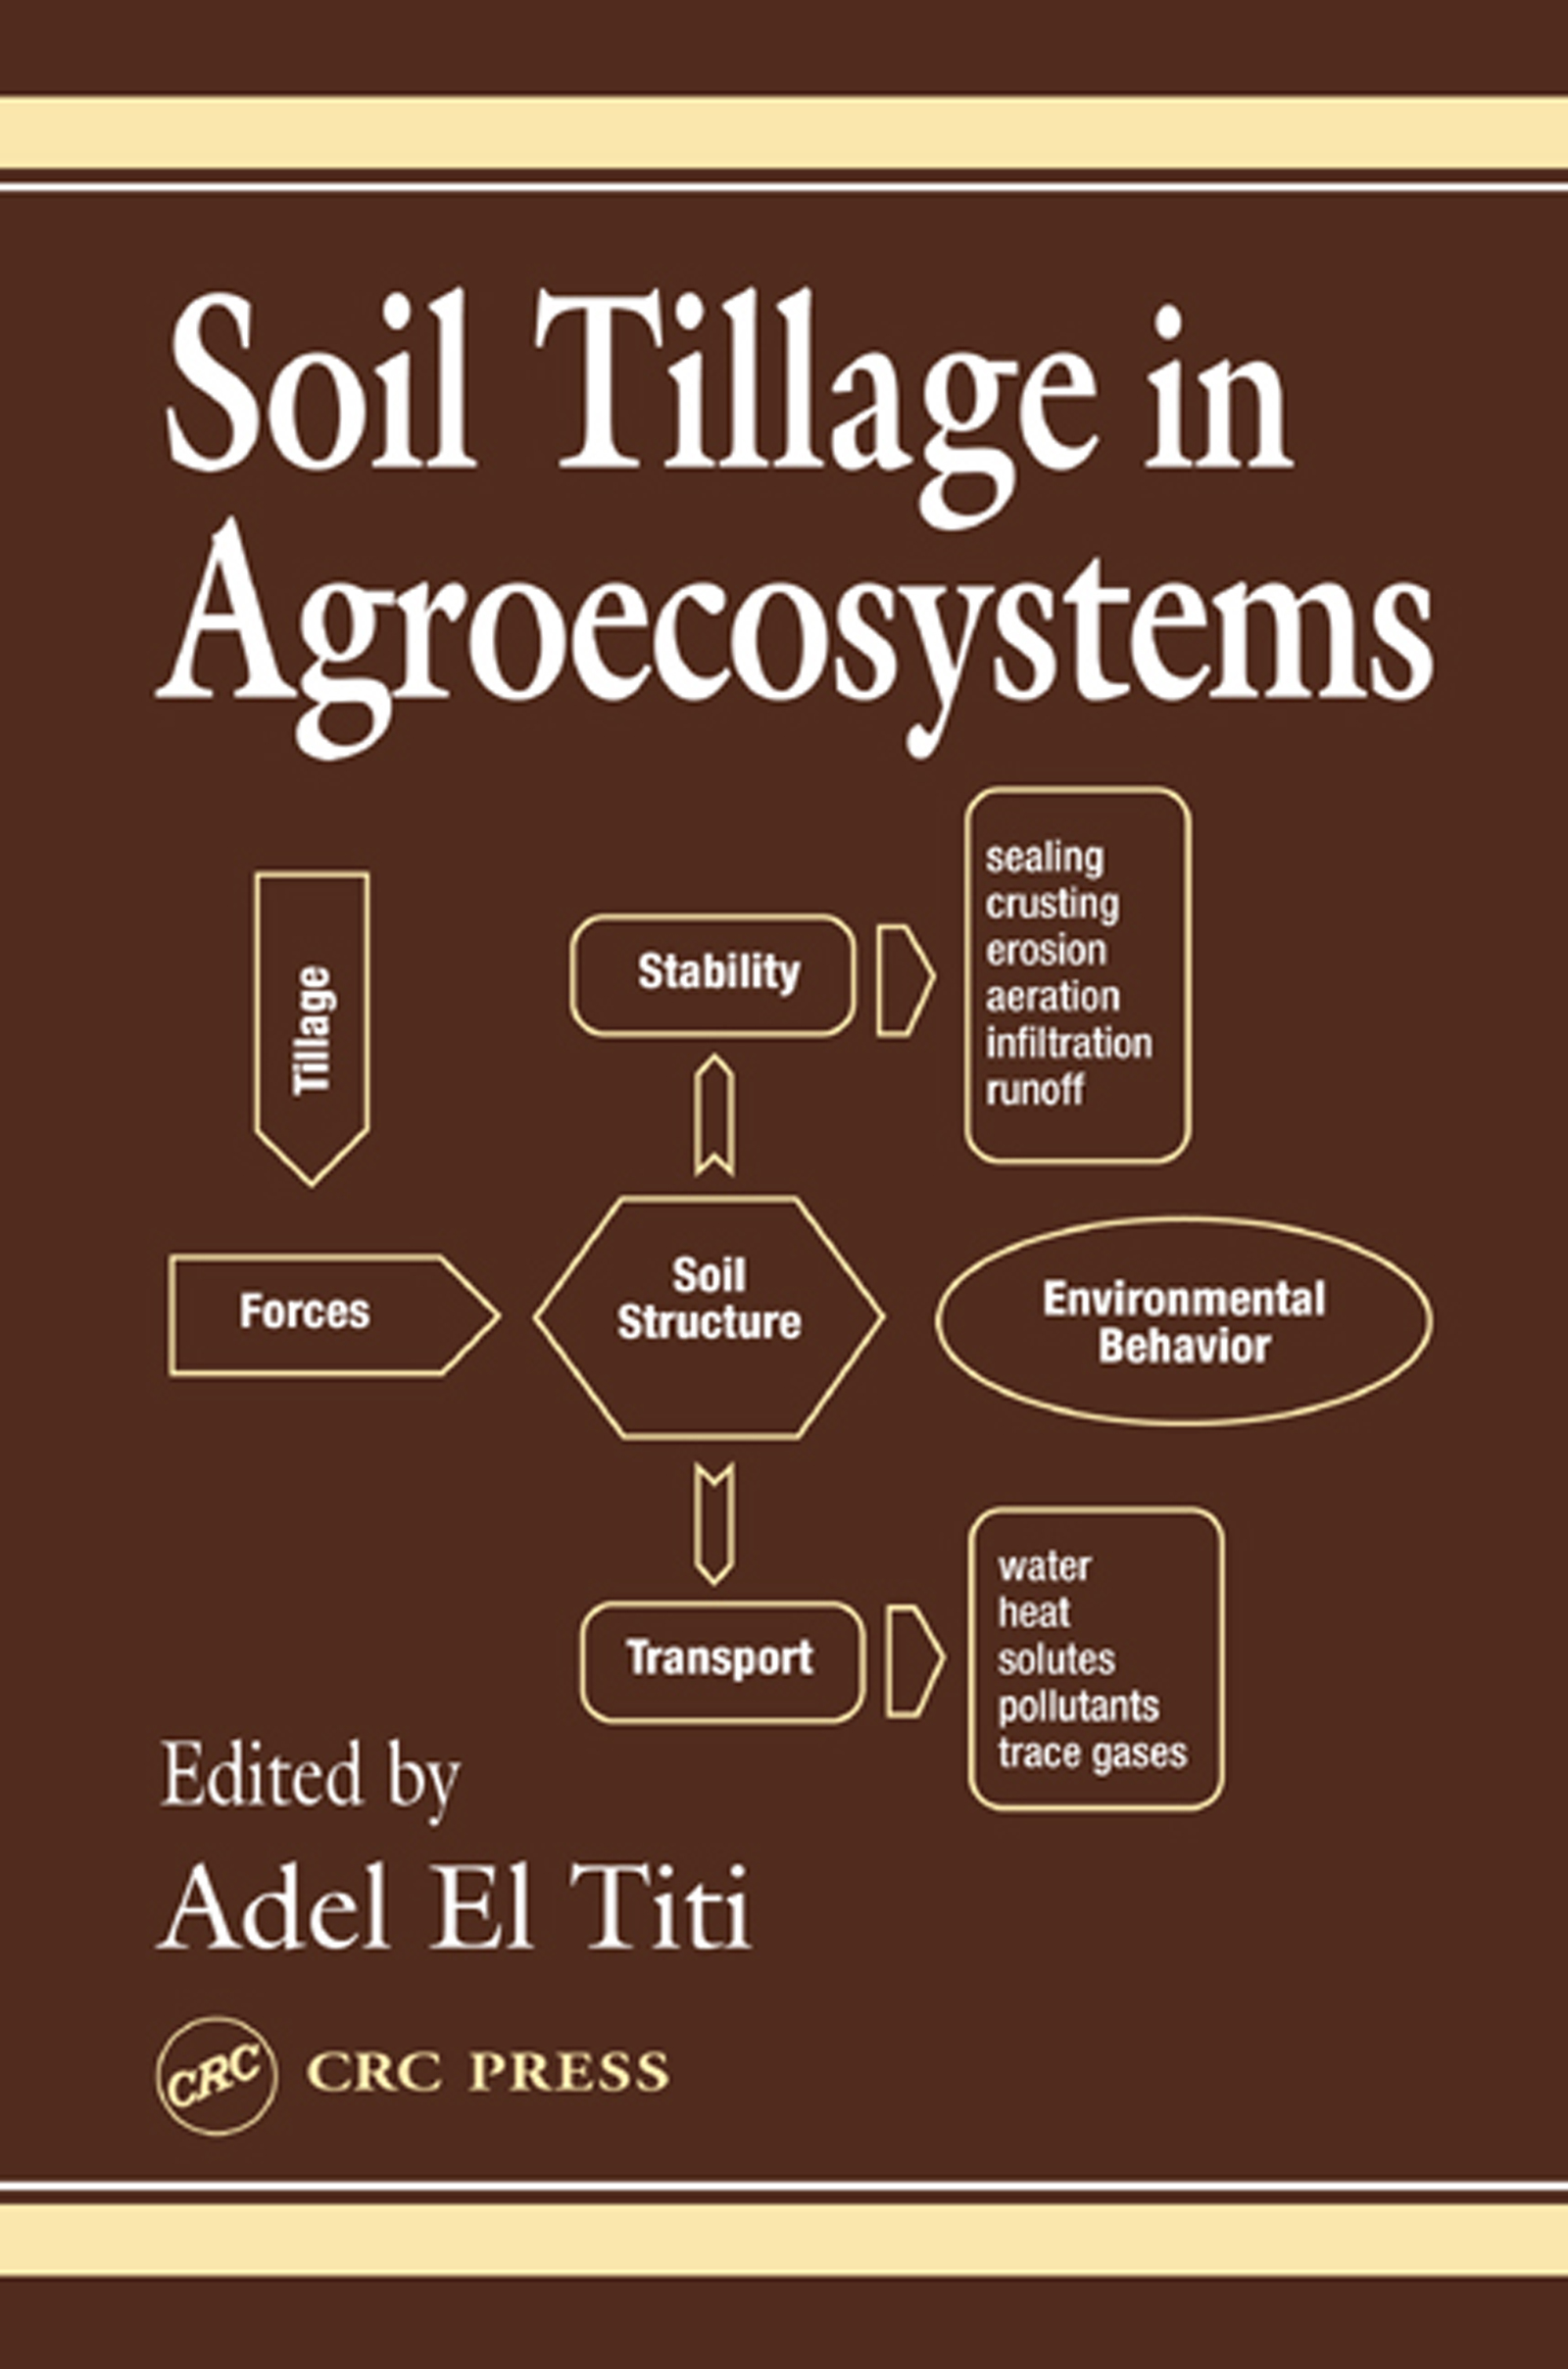 The Soil Microbial Community and Soil Tillage